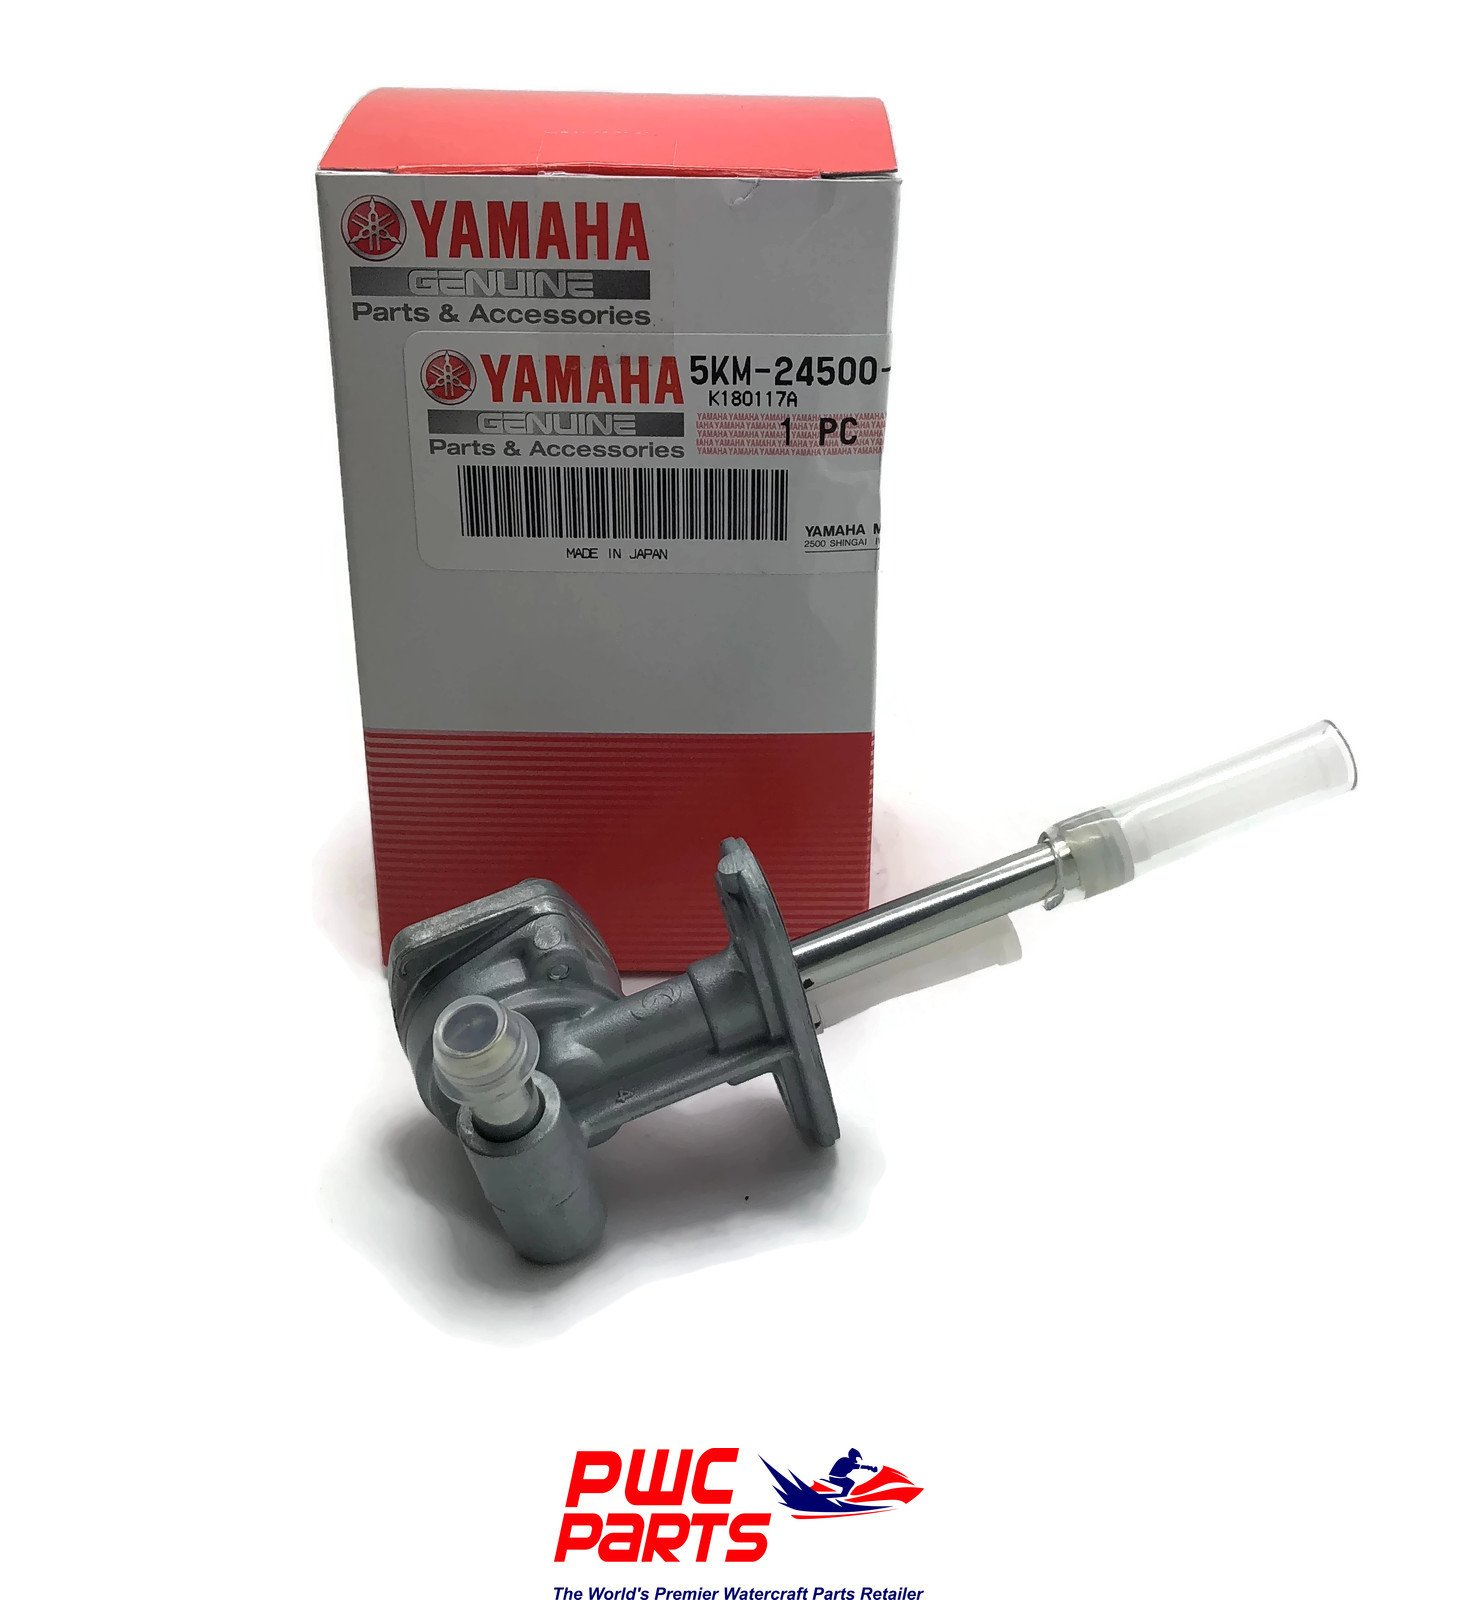 Yamaha 5KM-24500-10-00 Fuel Cock Assembly 1; 5KM245001000 Made by Yamaha